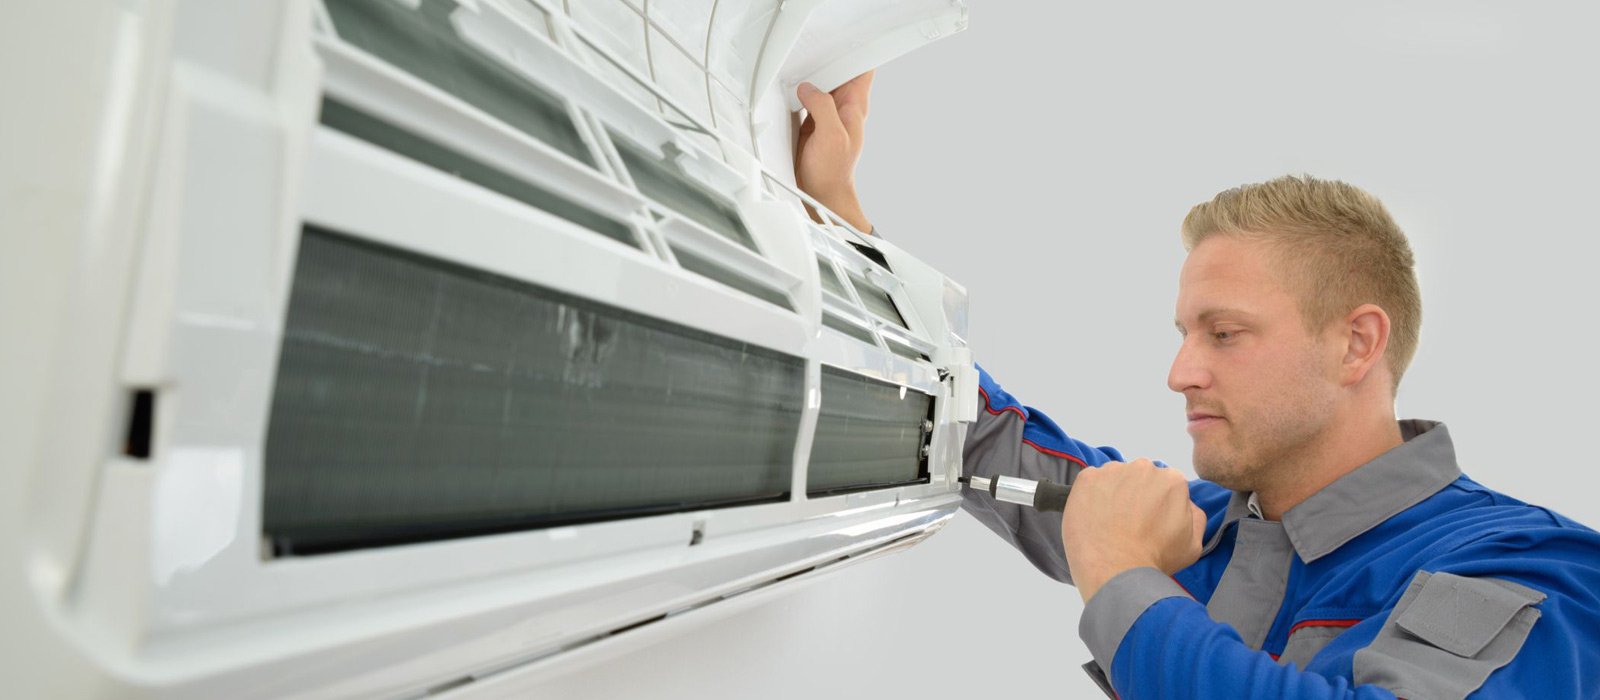 Our professional team are experts in their field with a depth of knowledge that makes us the people to call for all electrical installation or maintenance in Perth Metro.